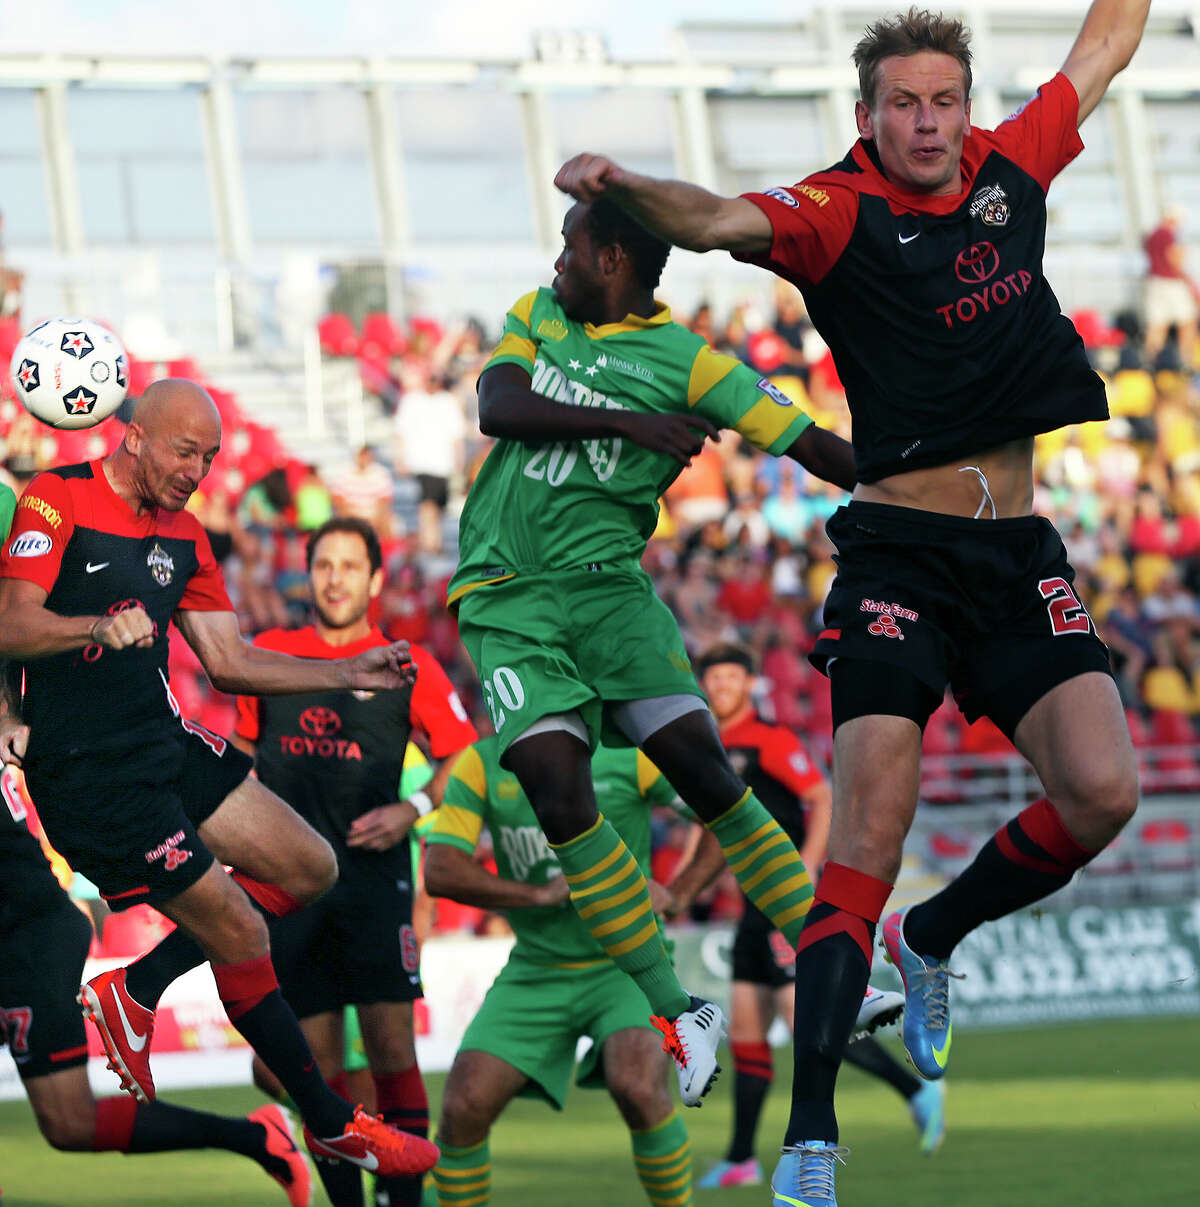 Tomasz Zahorski (right) lets the sidekick fly into Hans Denissen who heads it for his first goal as the San Antonio Scorpions play the Tampa Bay Rowdies at Toyota Field on August 3, 2013.